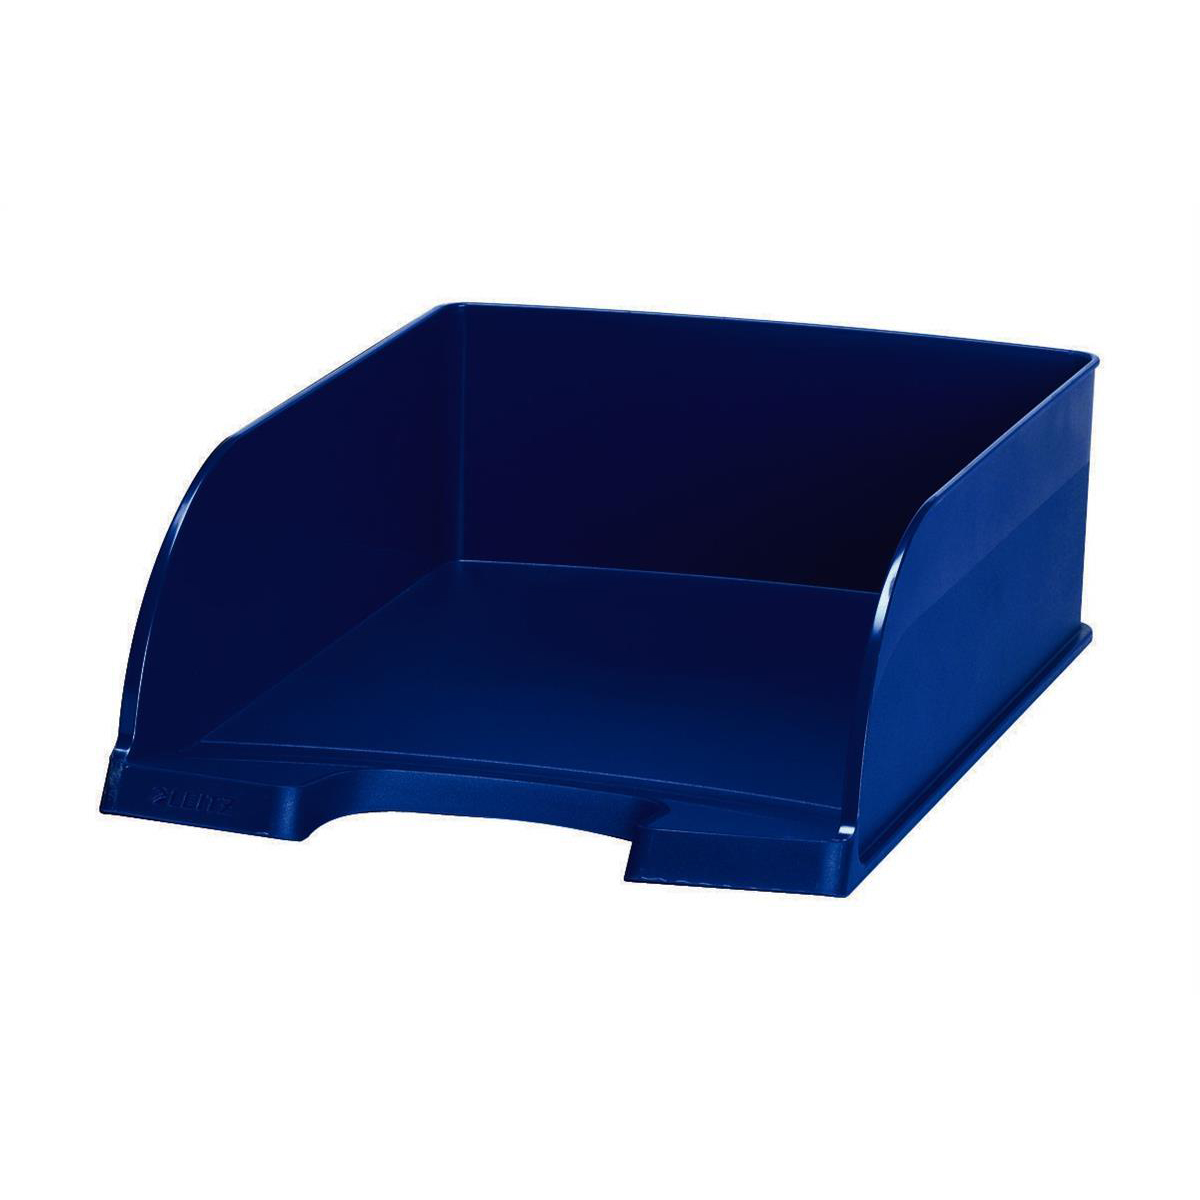 Leitz Letter Tray Jumbo Deep Sided with 2 Label Positions Blue Ref 52330035